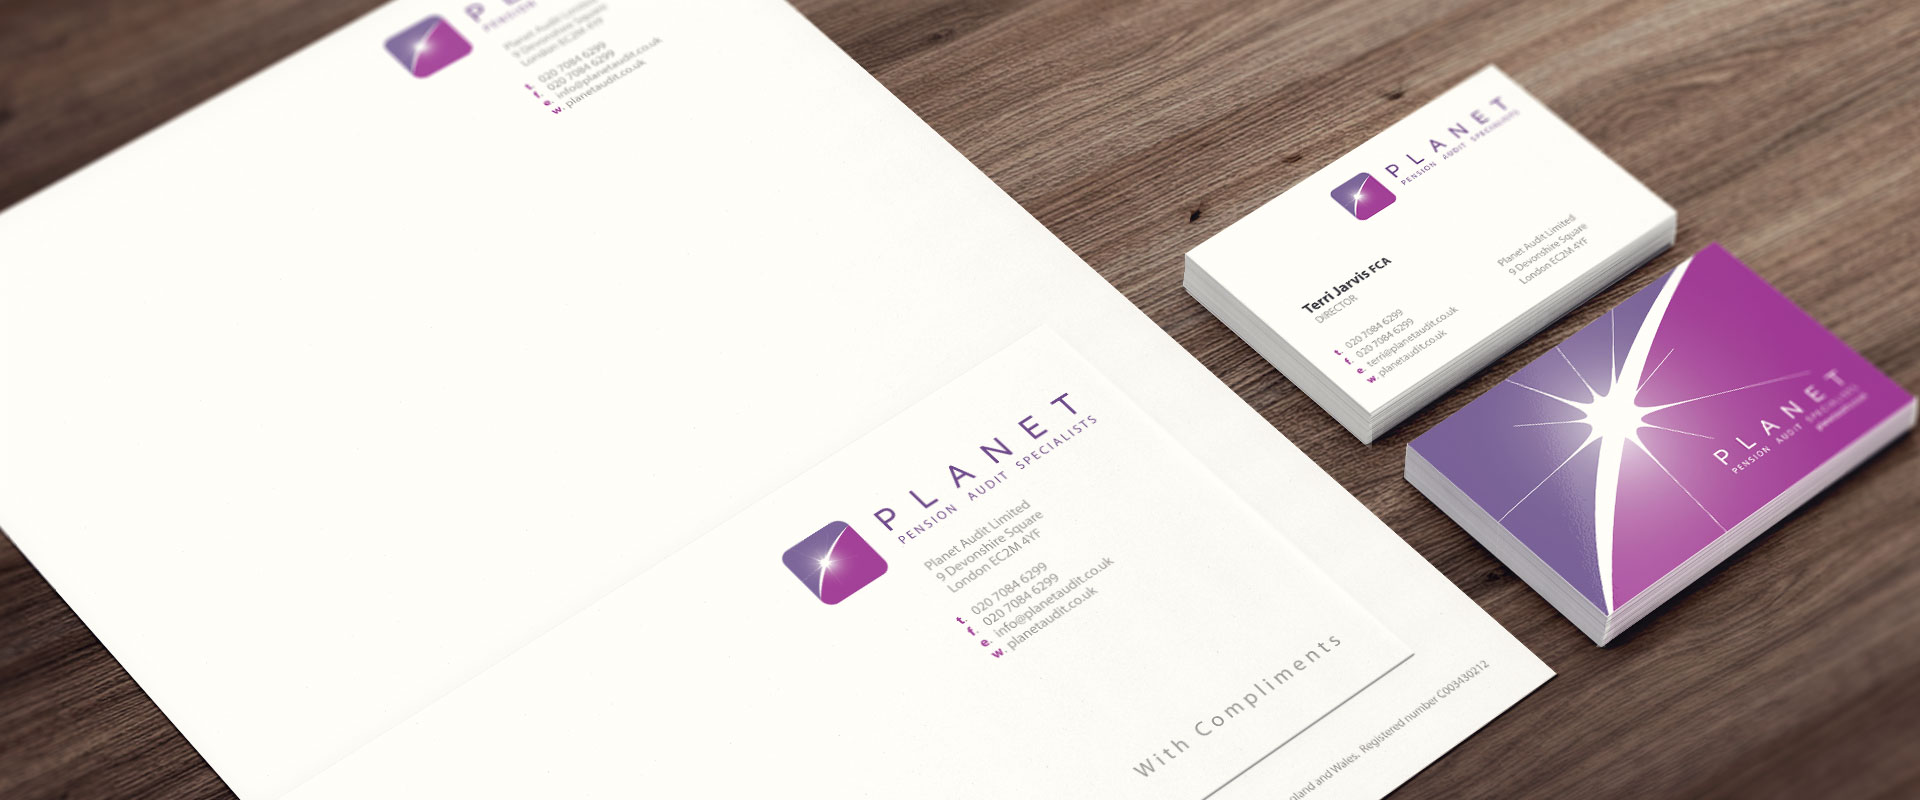 Planet Pensions Stationary